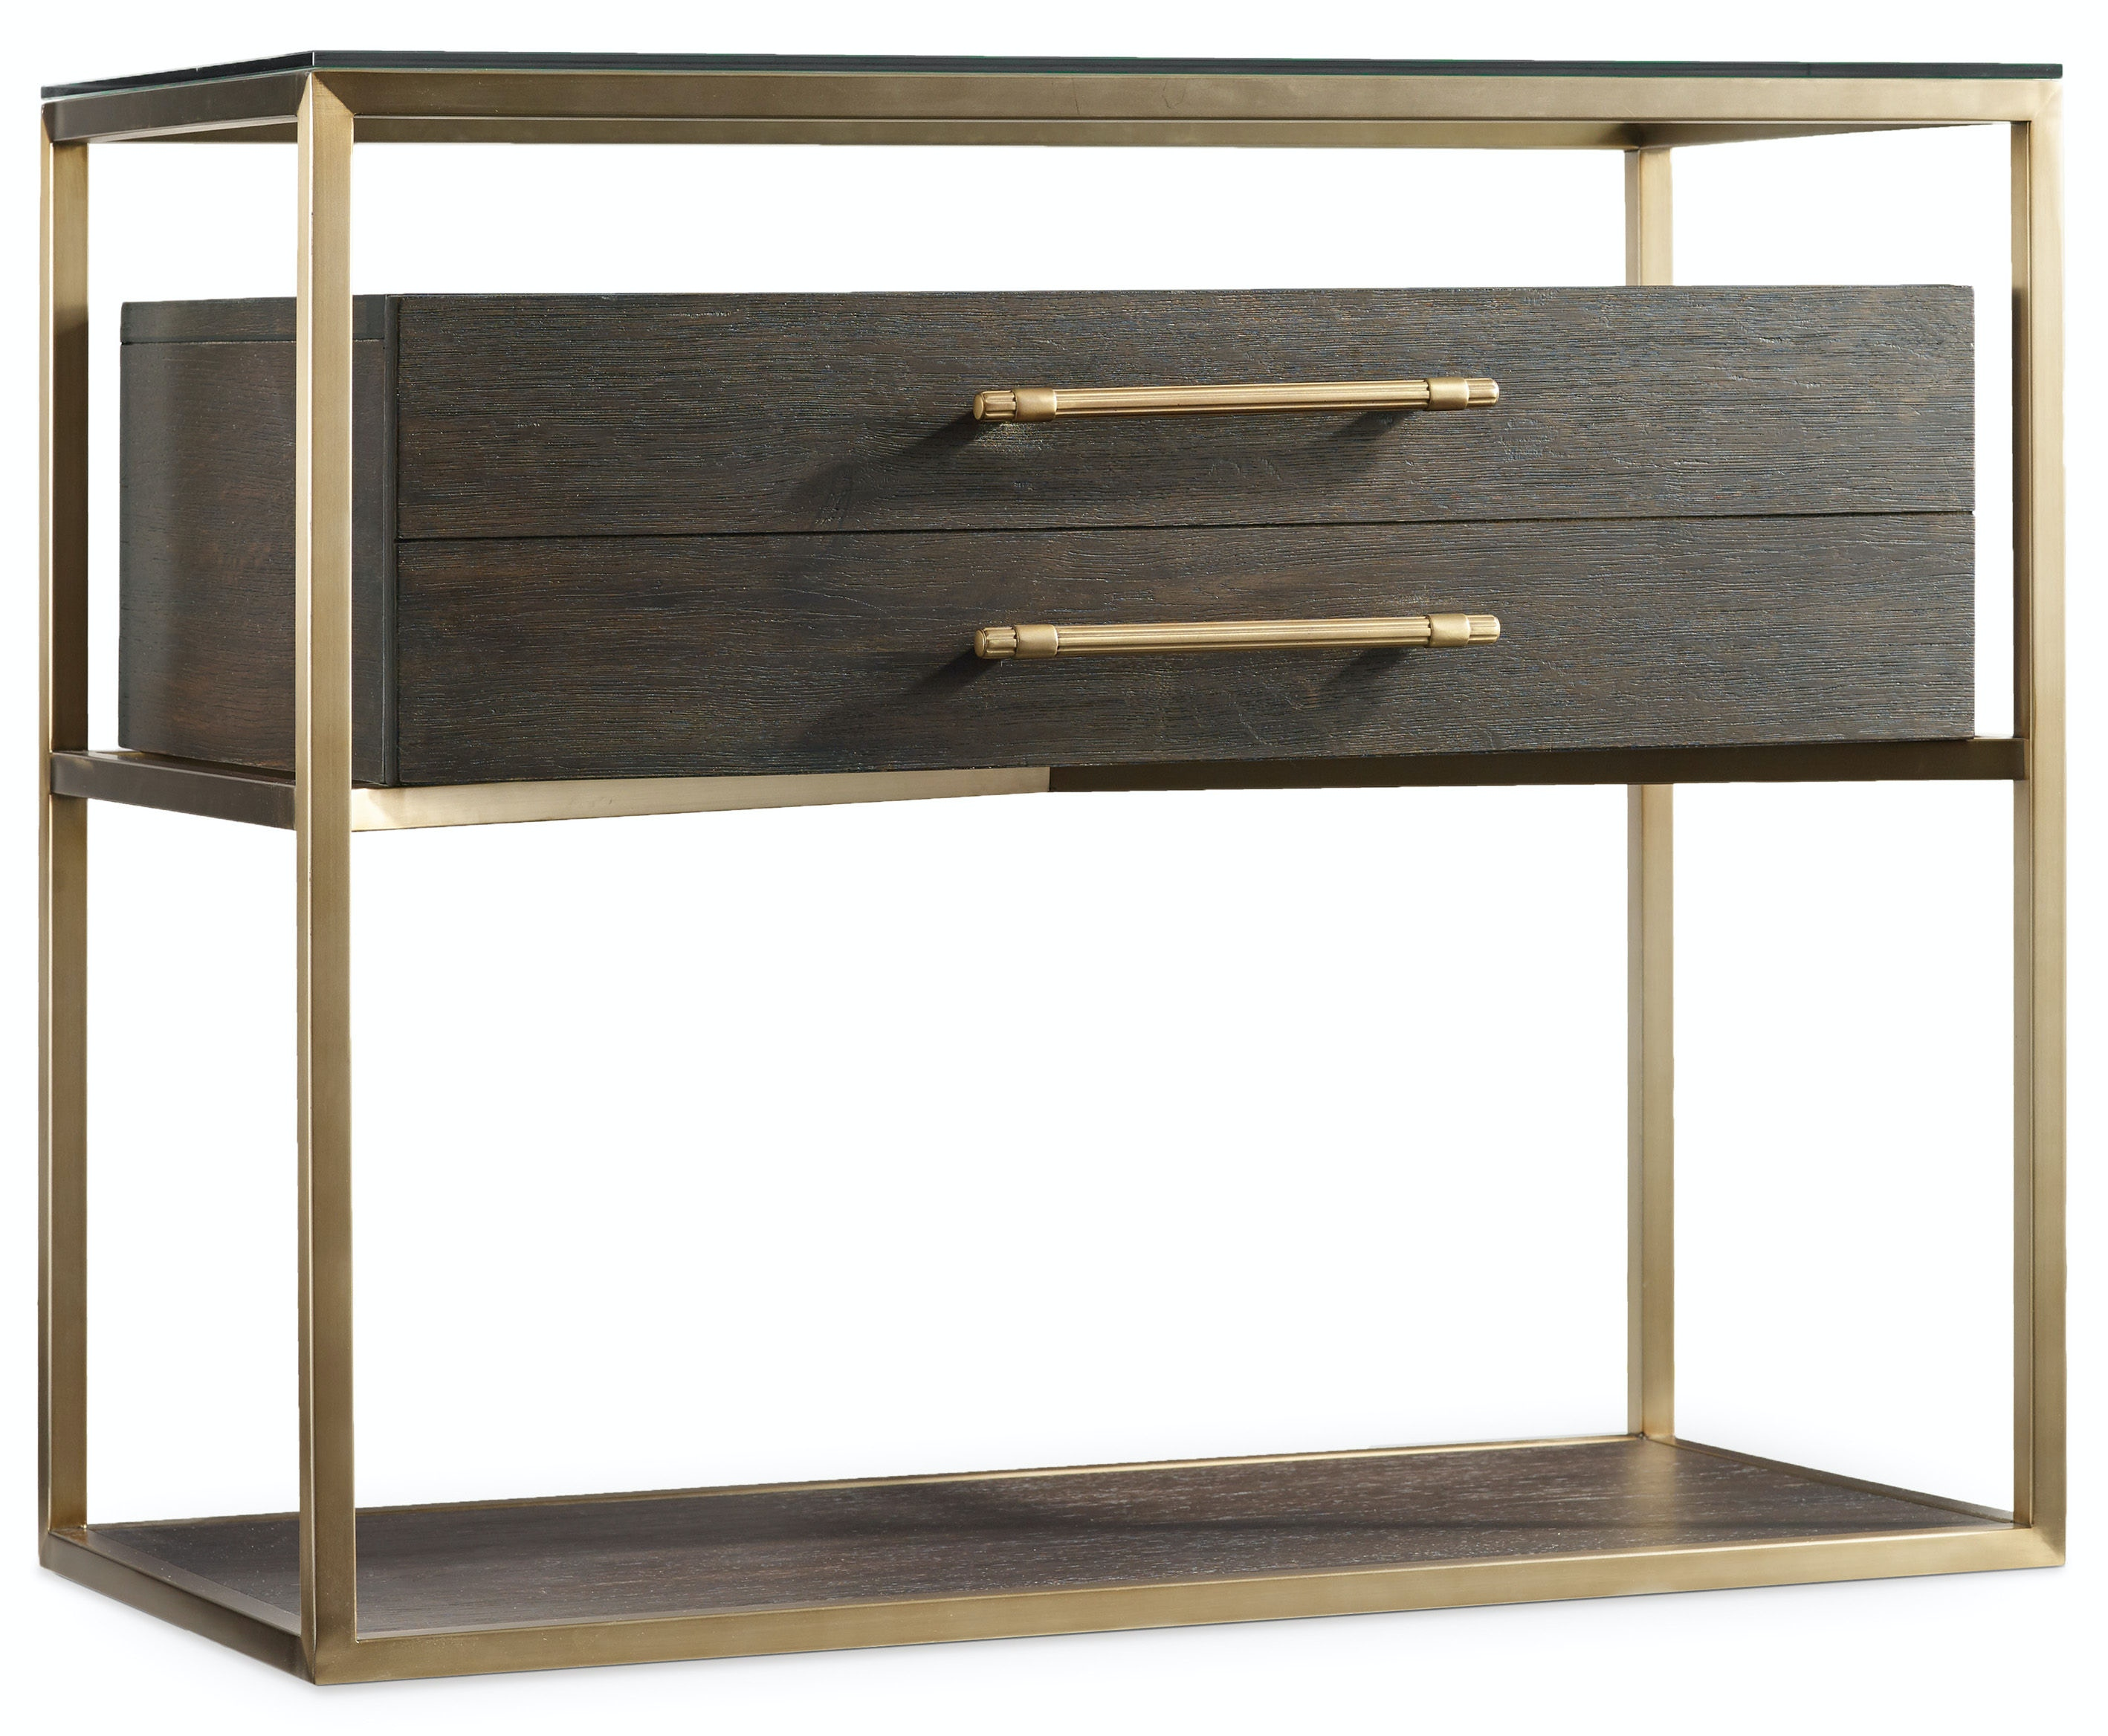 Hooker Furniture Bedroom Curata One Drawer Nightstand 1600 90016 DKW